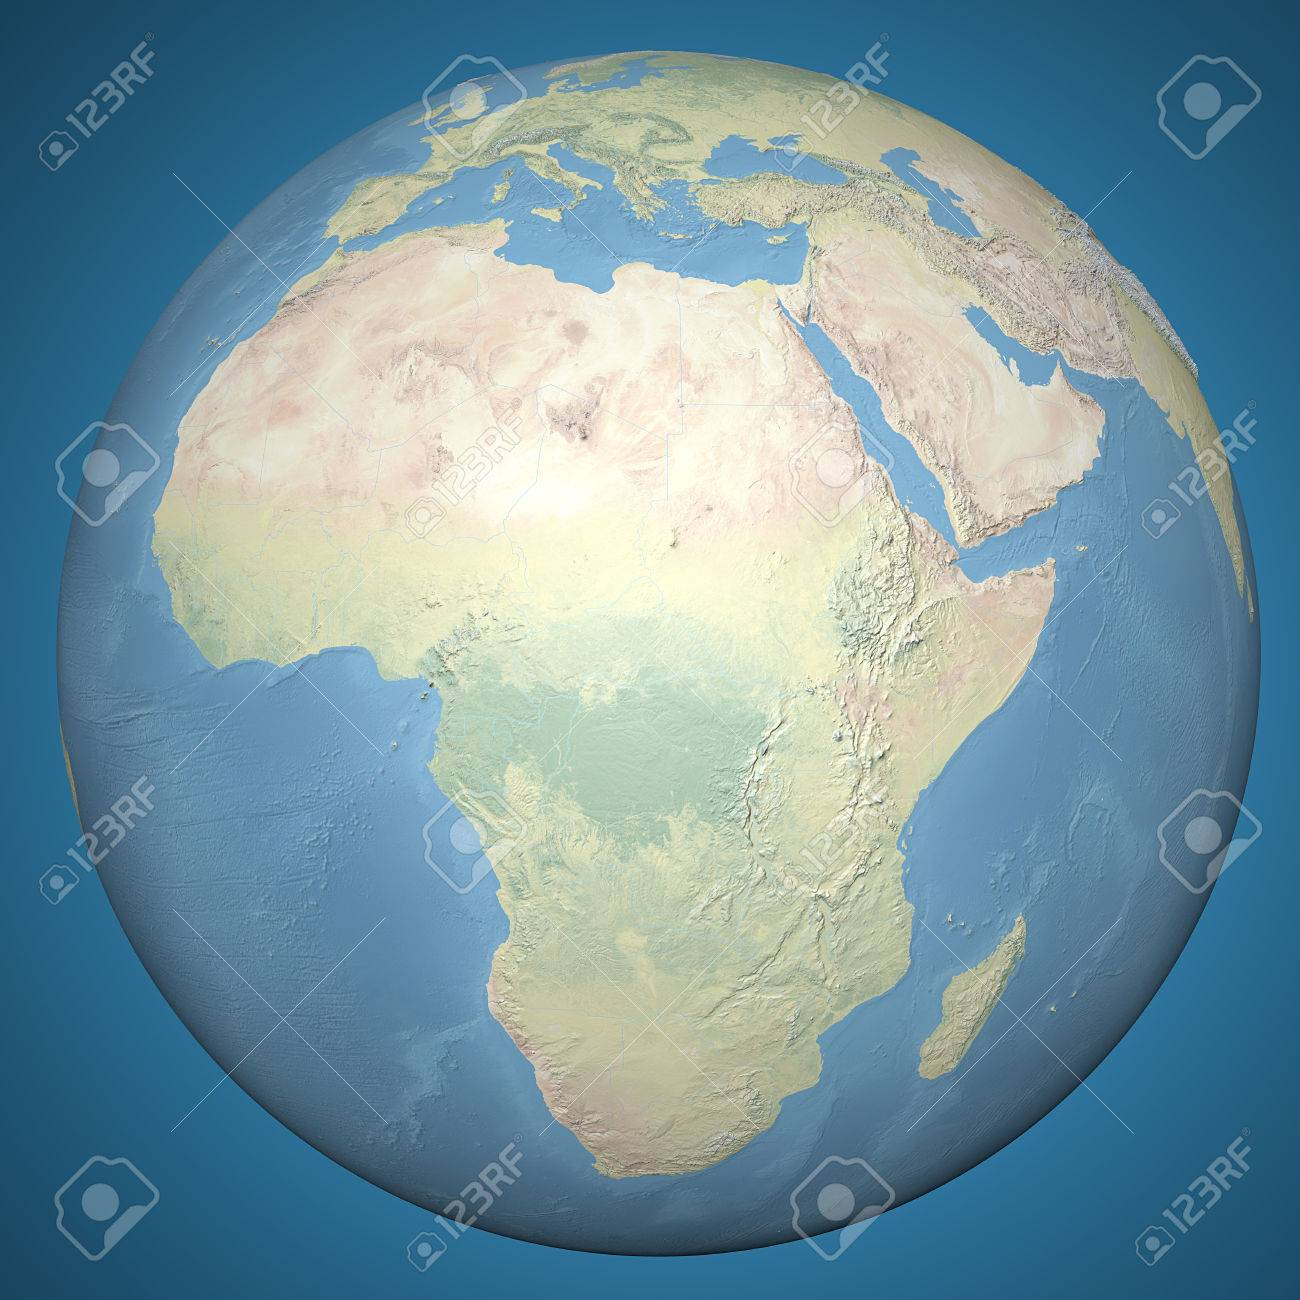 Relief Map Of The World.World Earth Globe Africa Middle East Relief Map Stock Photo